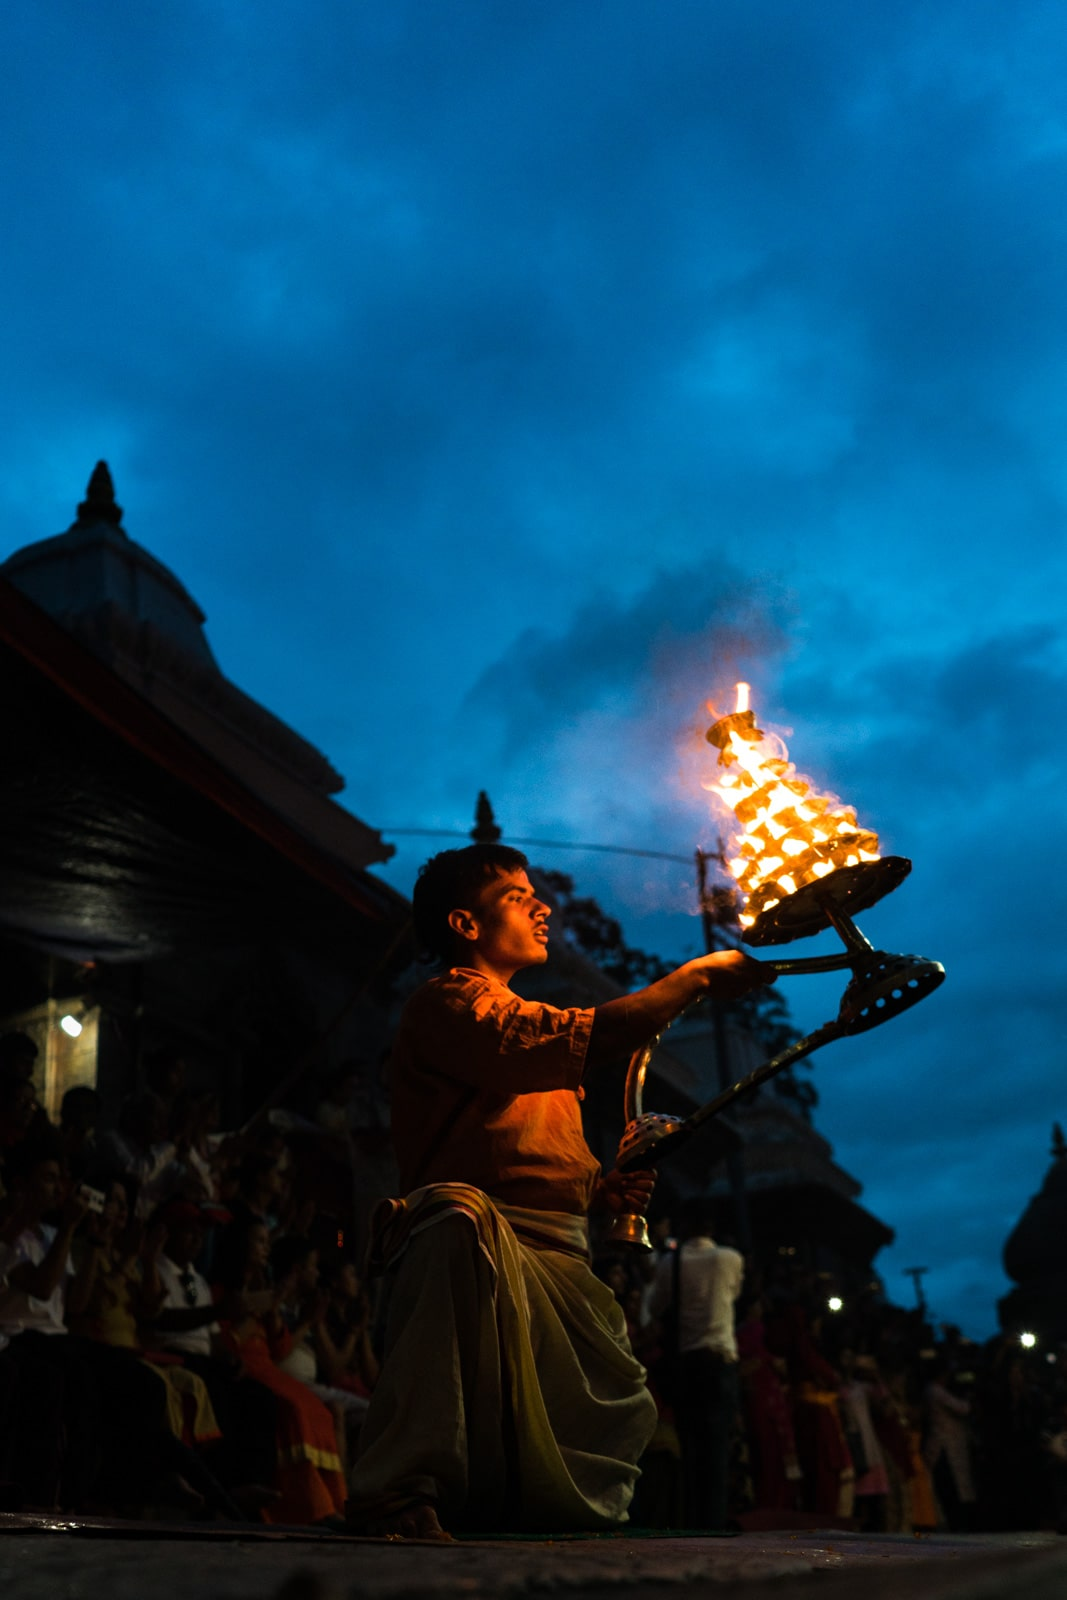 Coolest things to see in Kathmandu, Nepal during monsoon - Bagmati Aarti at Pashupatinath temple - Lost With Purpose travel blog